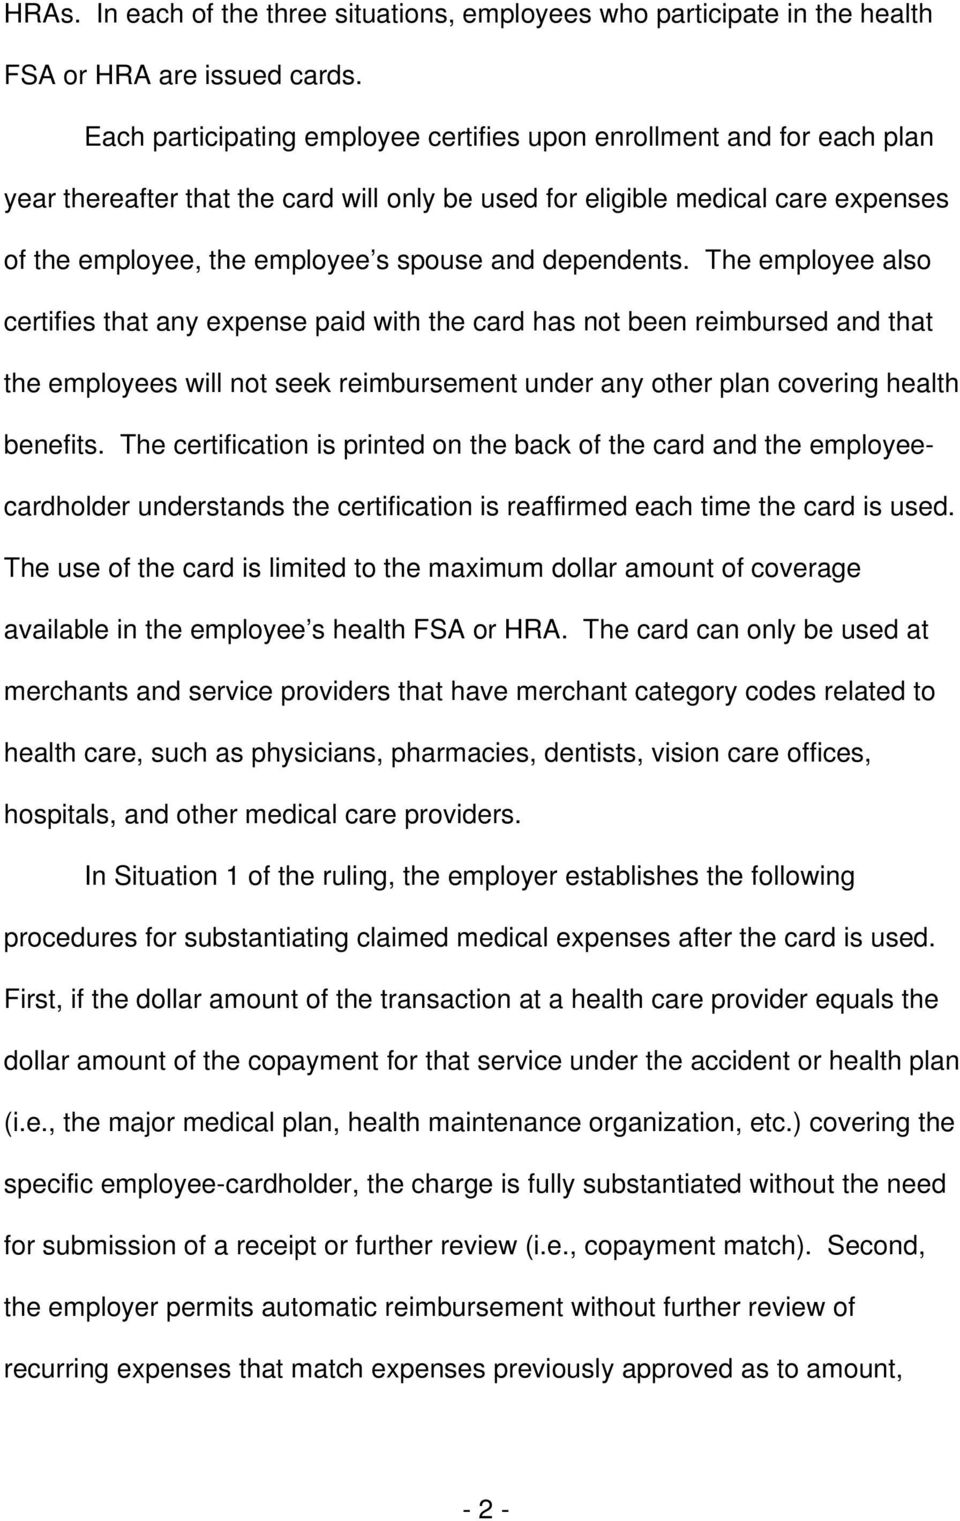 dependents. The employee also certifies that any expense paid with the card has not been reimbursed and that the employees will not seek reimbursement under any other plan covering health benefits.